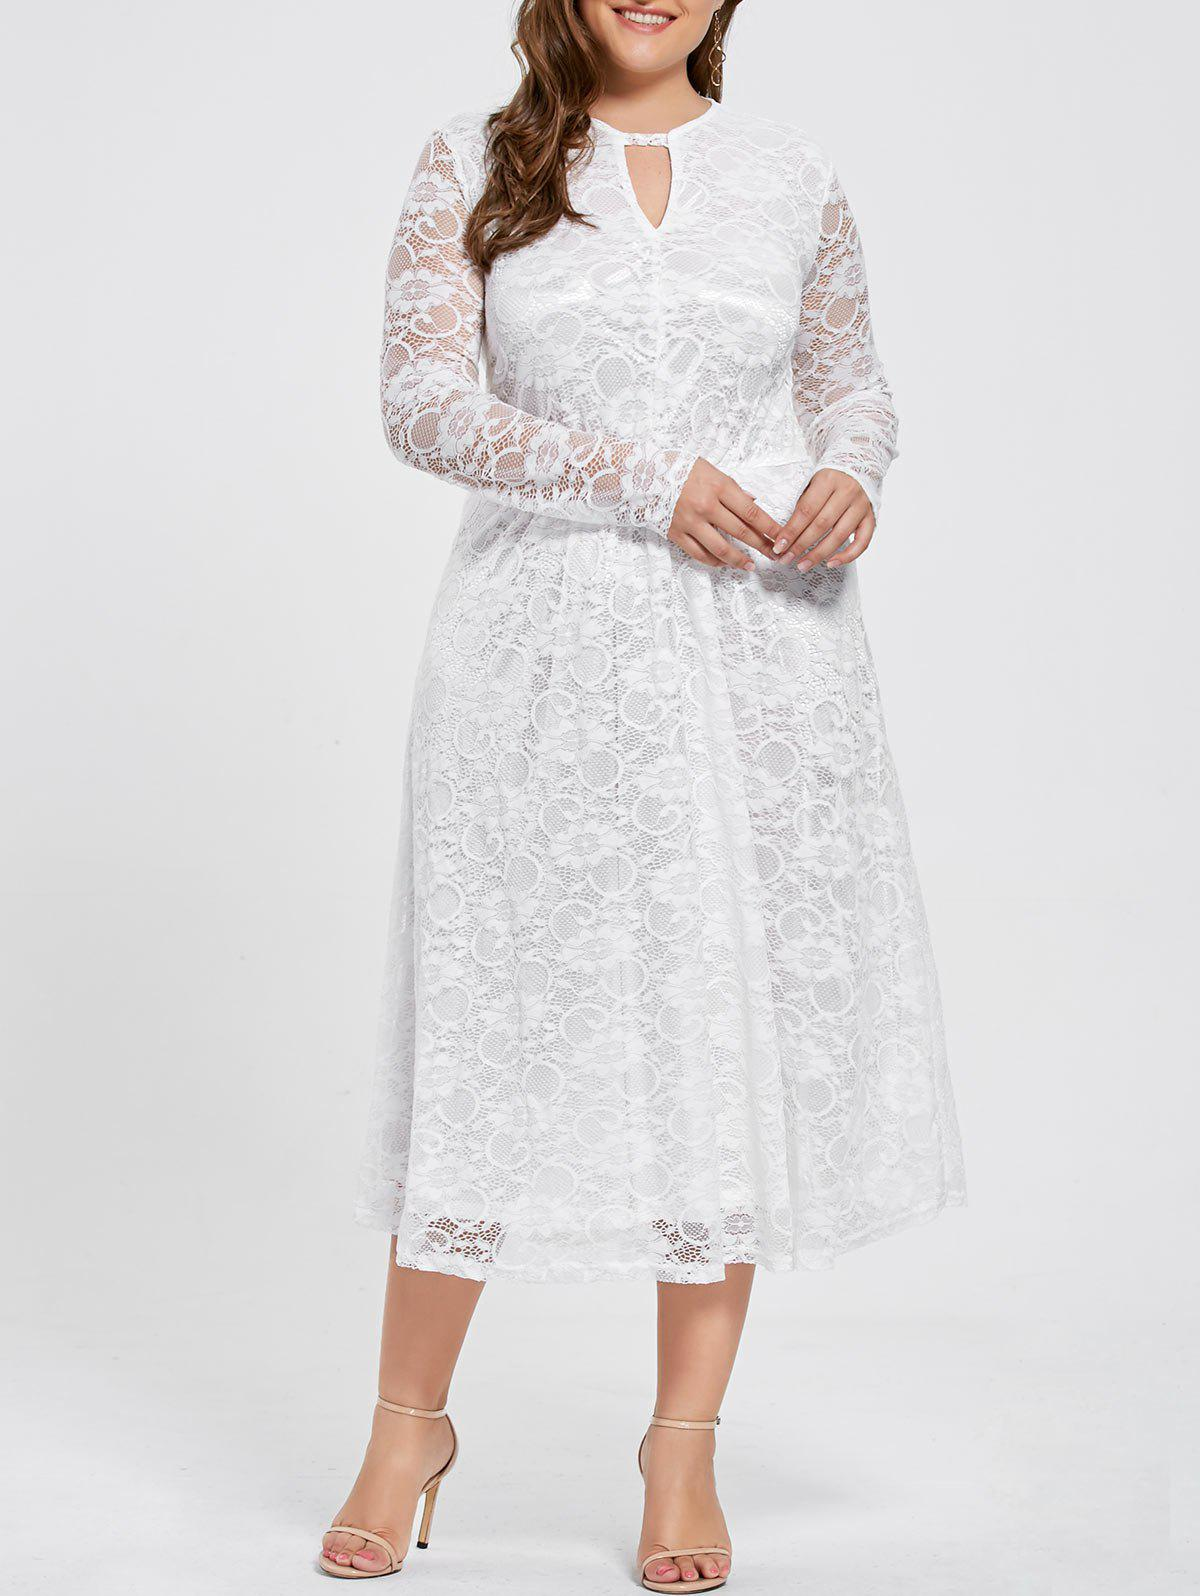 Long Sleeve Plus Size Keyhole Lace DressWOMEN<br><br>Size: 2XL; Color: WHITE; Style: Brief; Material: Polyester; Silhouette: Sheath; Dresses Length: Mid-Calf; Neckline: Keyhole Neck; Sleeve Length: Long Sleeves; Embellishment: Lace; Pattern Type: Solid; With Belt: No; Season: Fall,Spring; Weight: 0.4600kg; Package Contents: 1 x Dress;